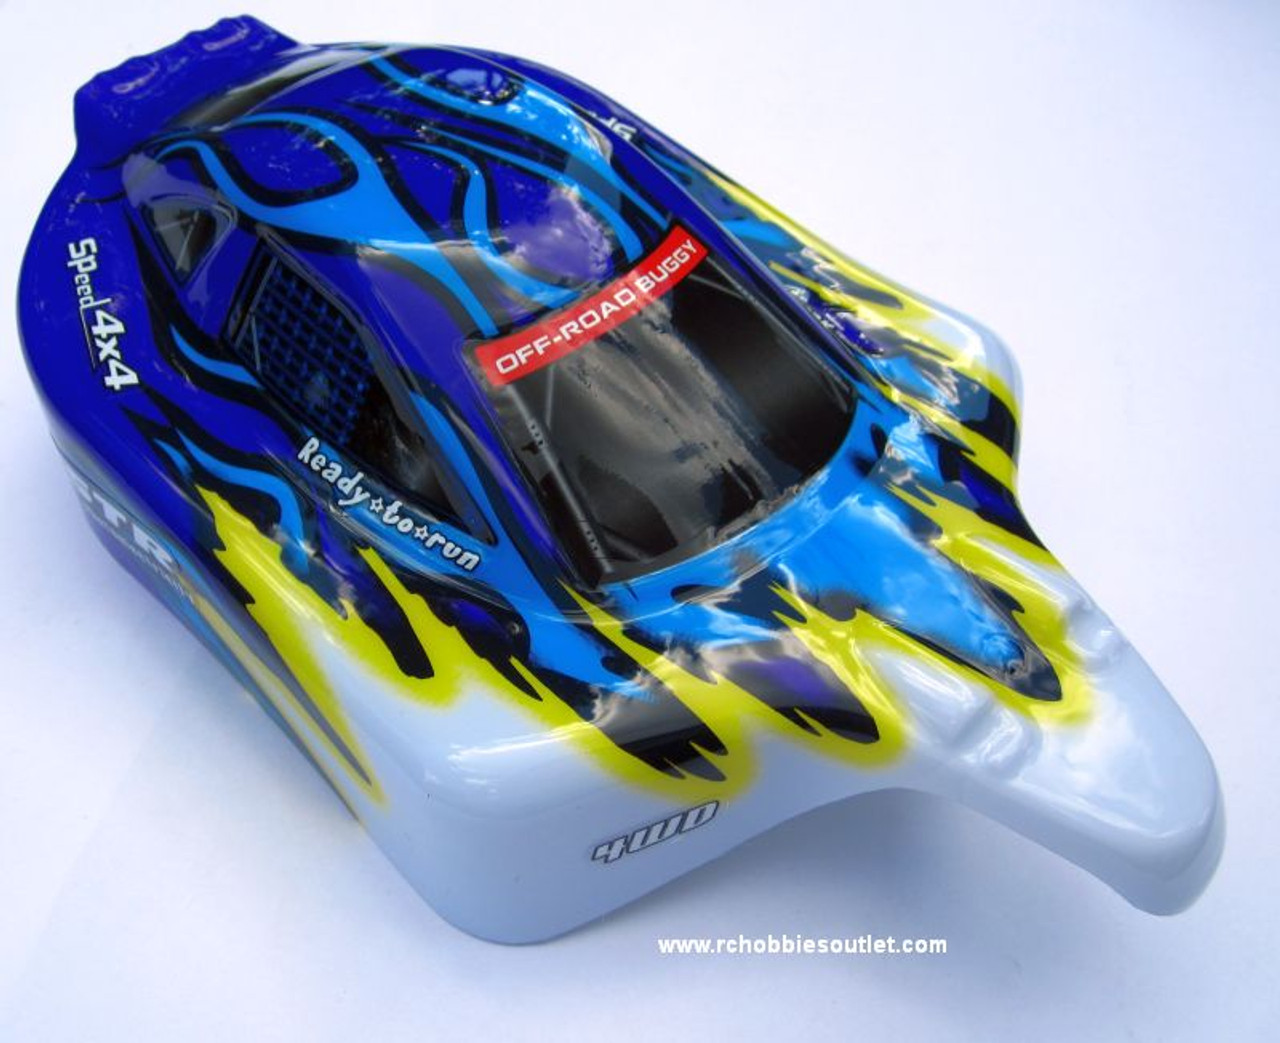 YX10071 HSP  RC BUGGY 1/10 SCALE BODY SHELL